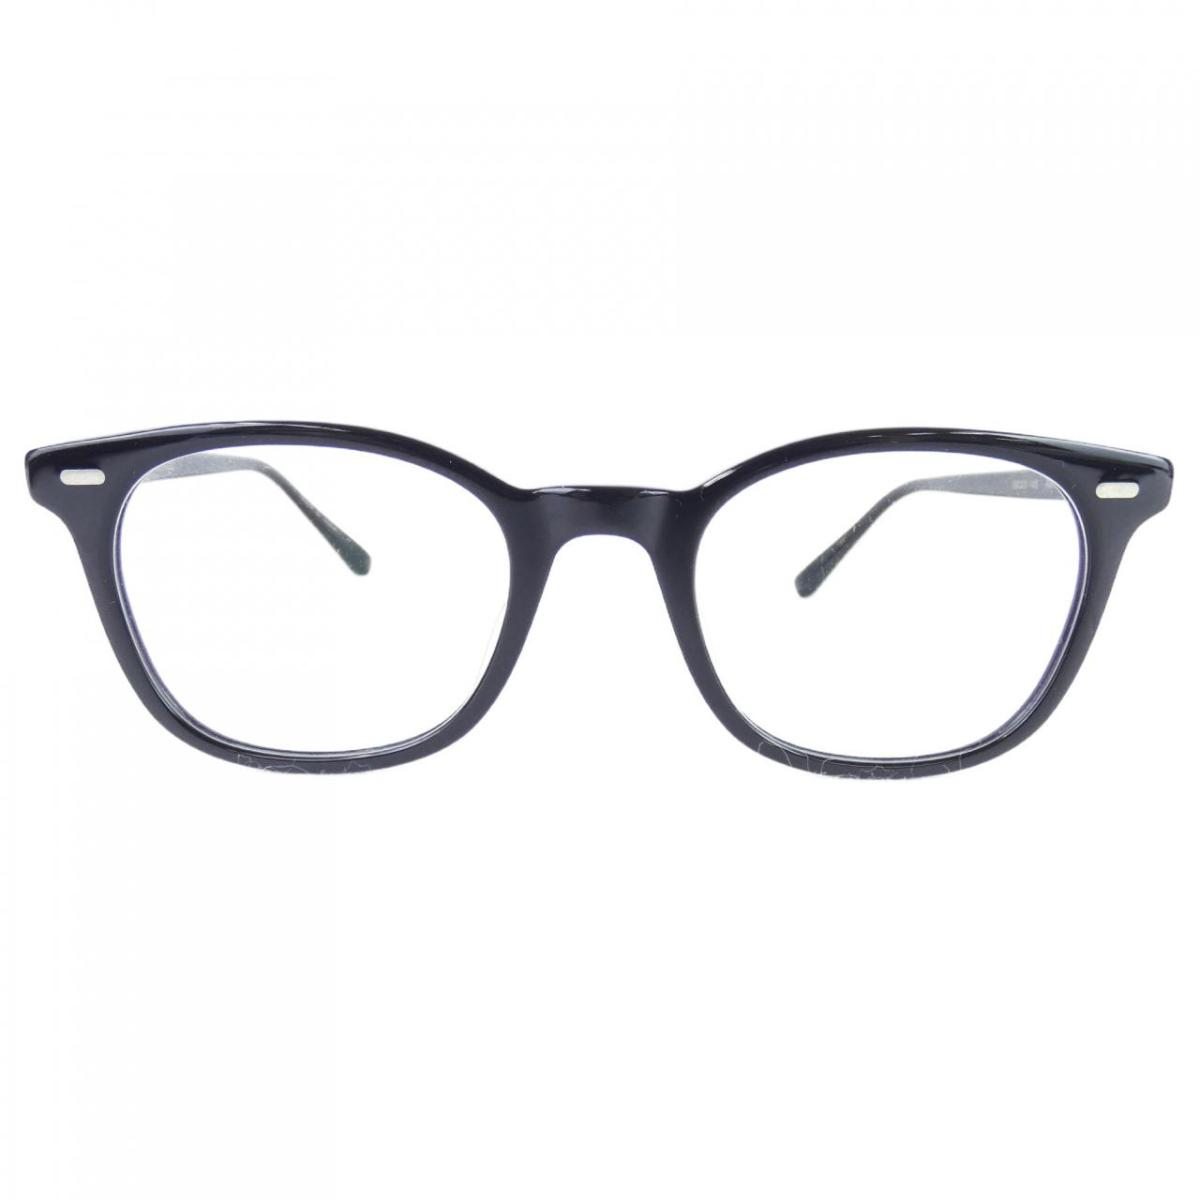 オリバーピープルズ OLIVER PEOPLES EYEWEAR Aaric【中古】